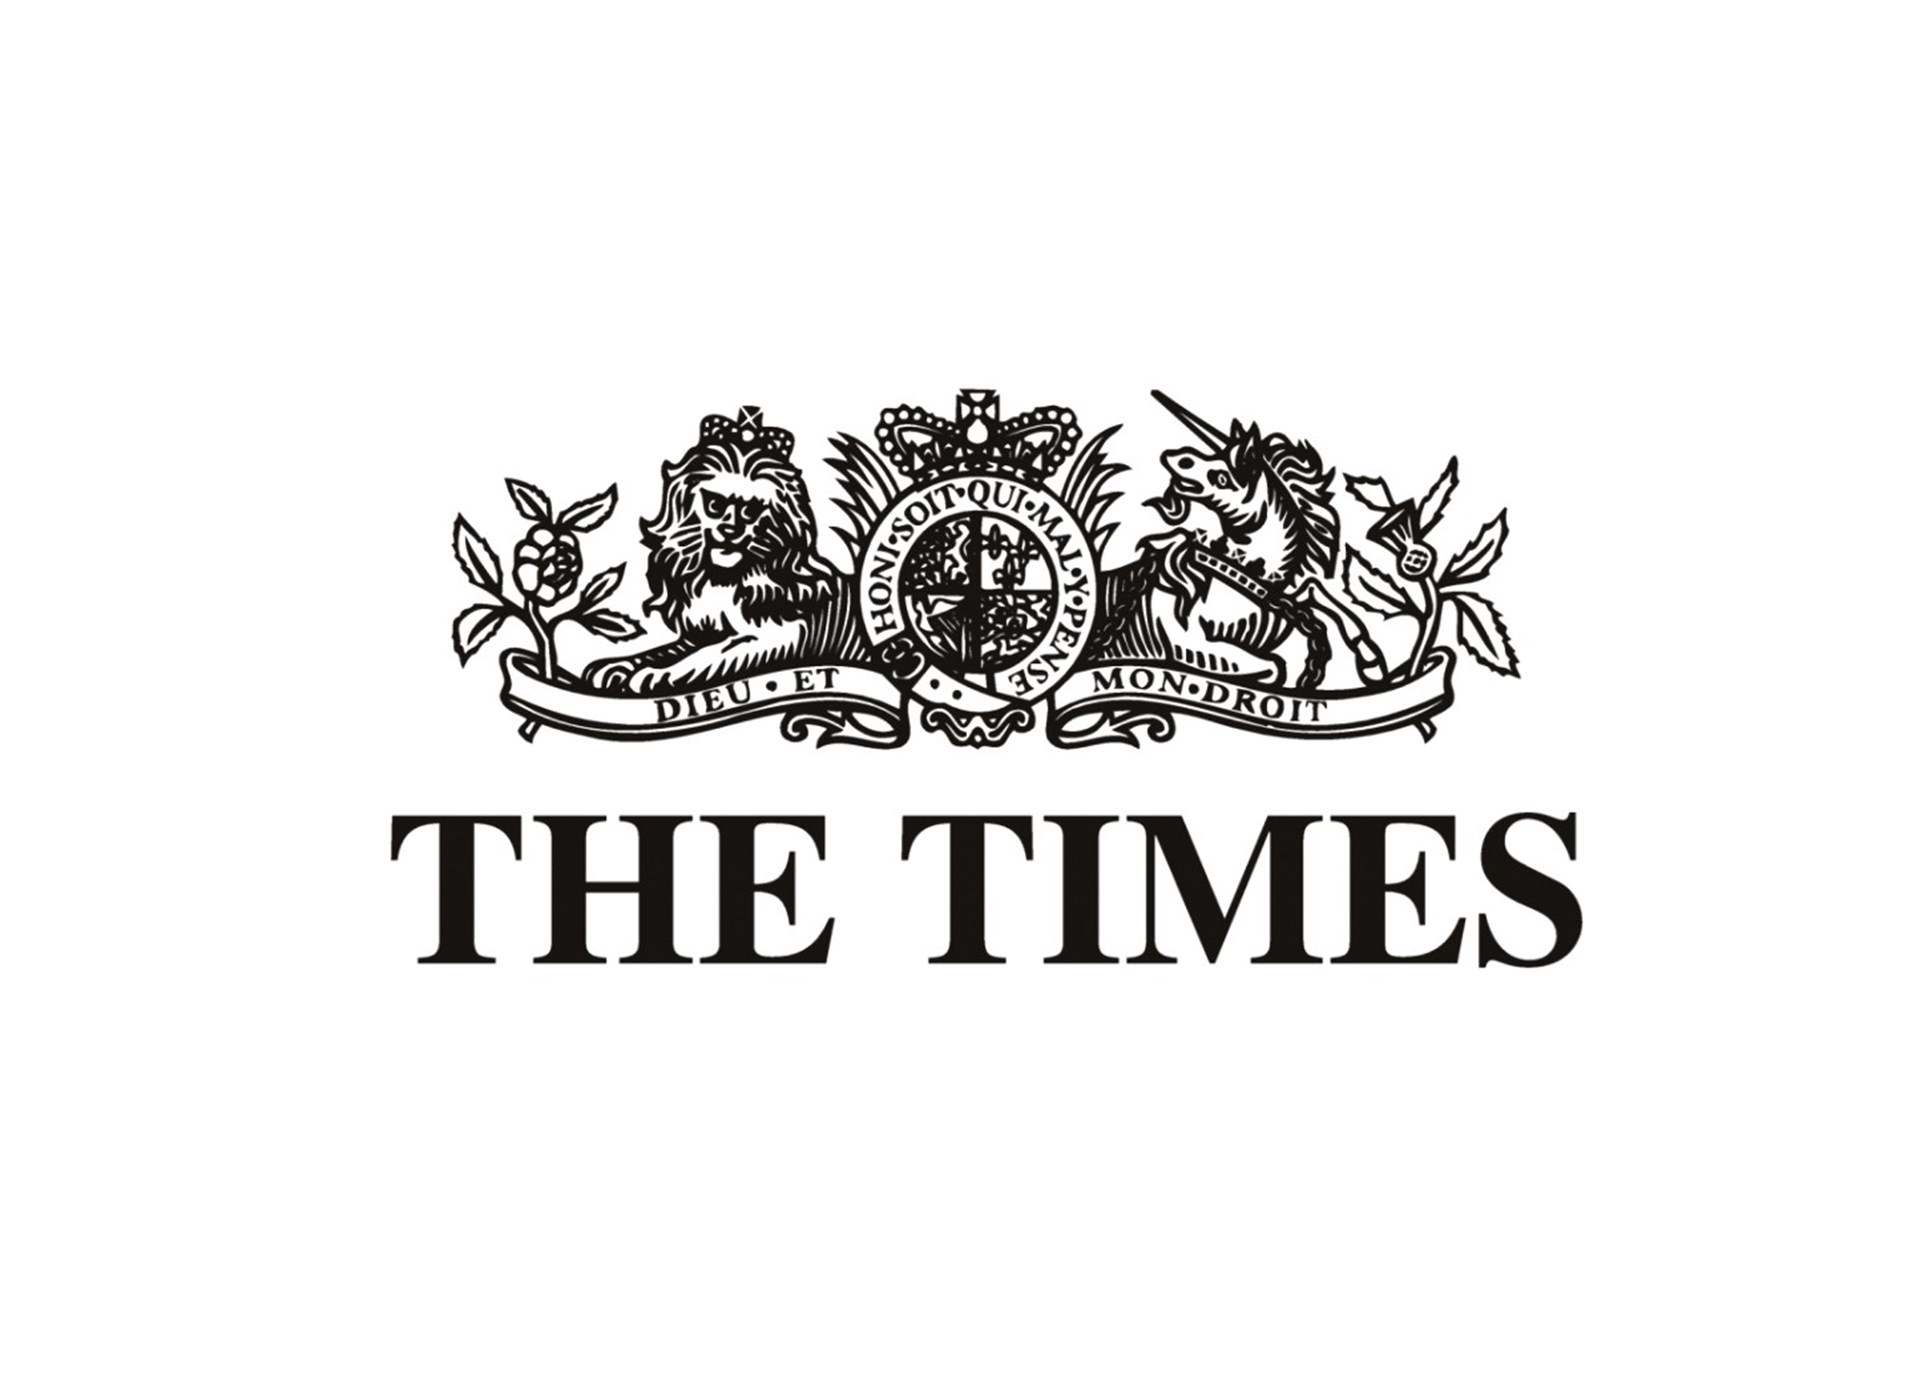 https://proposeprconsultancy.com/wp-content/uploads/2019/05/the-times-logo.jpg